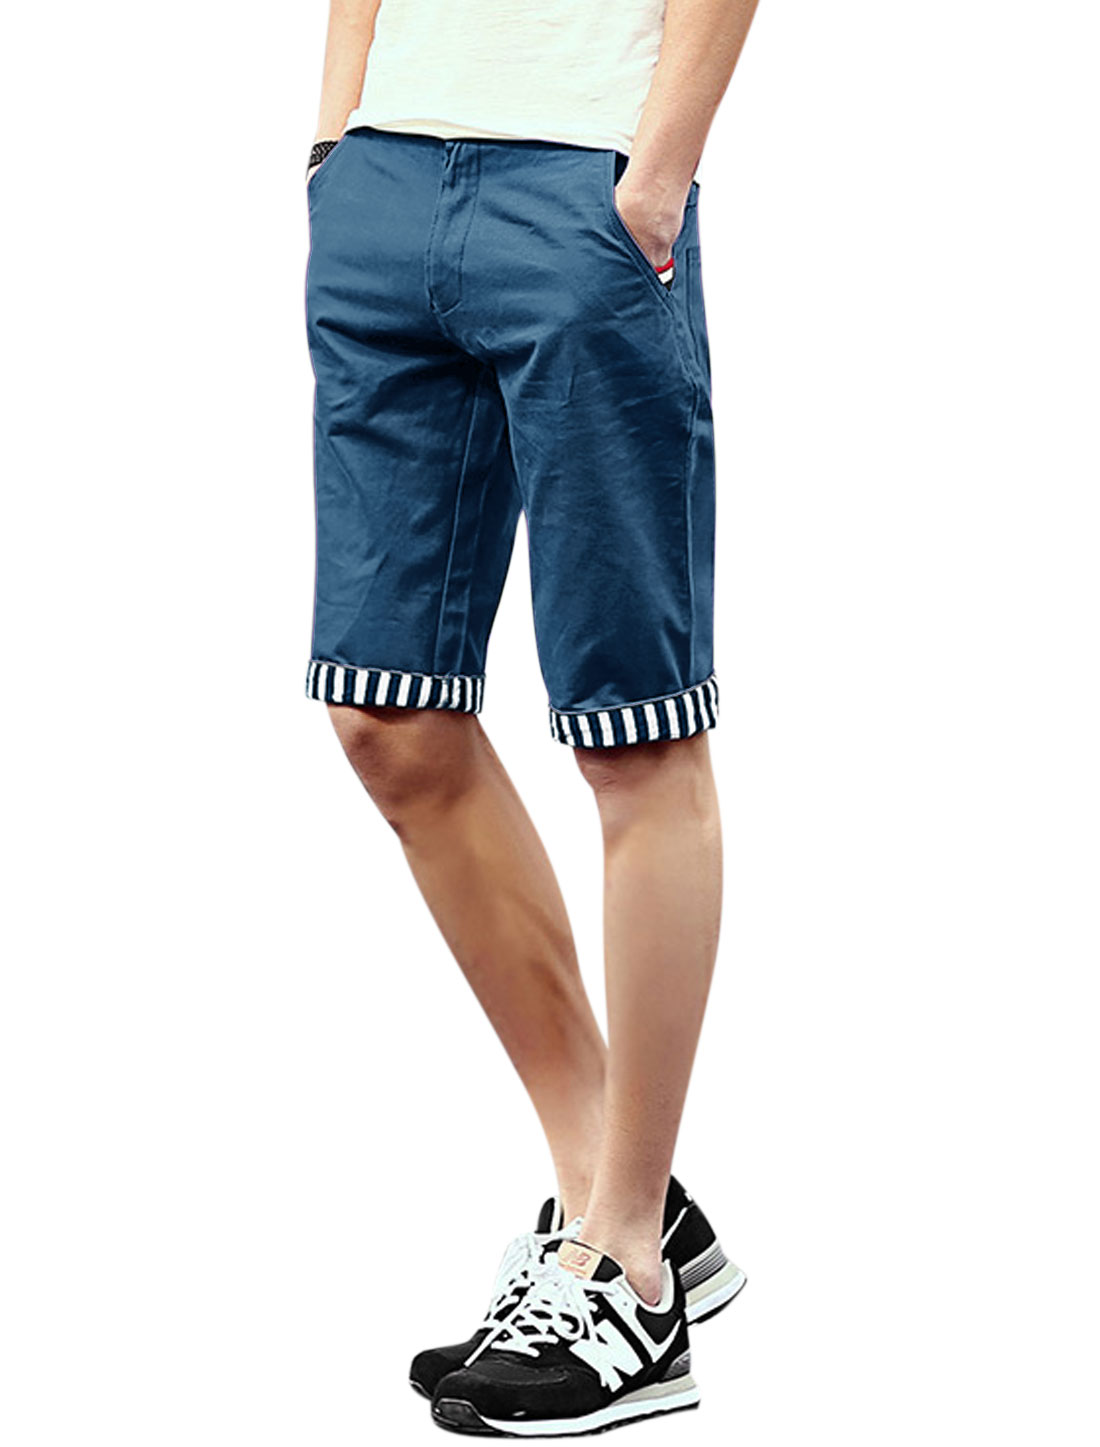 Men Mid Waist Zip Fly Pockets Slim Fit Leisure Short Pants Navy Blue W32